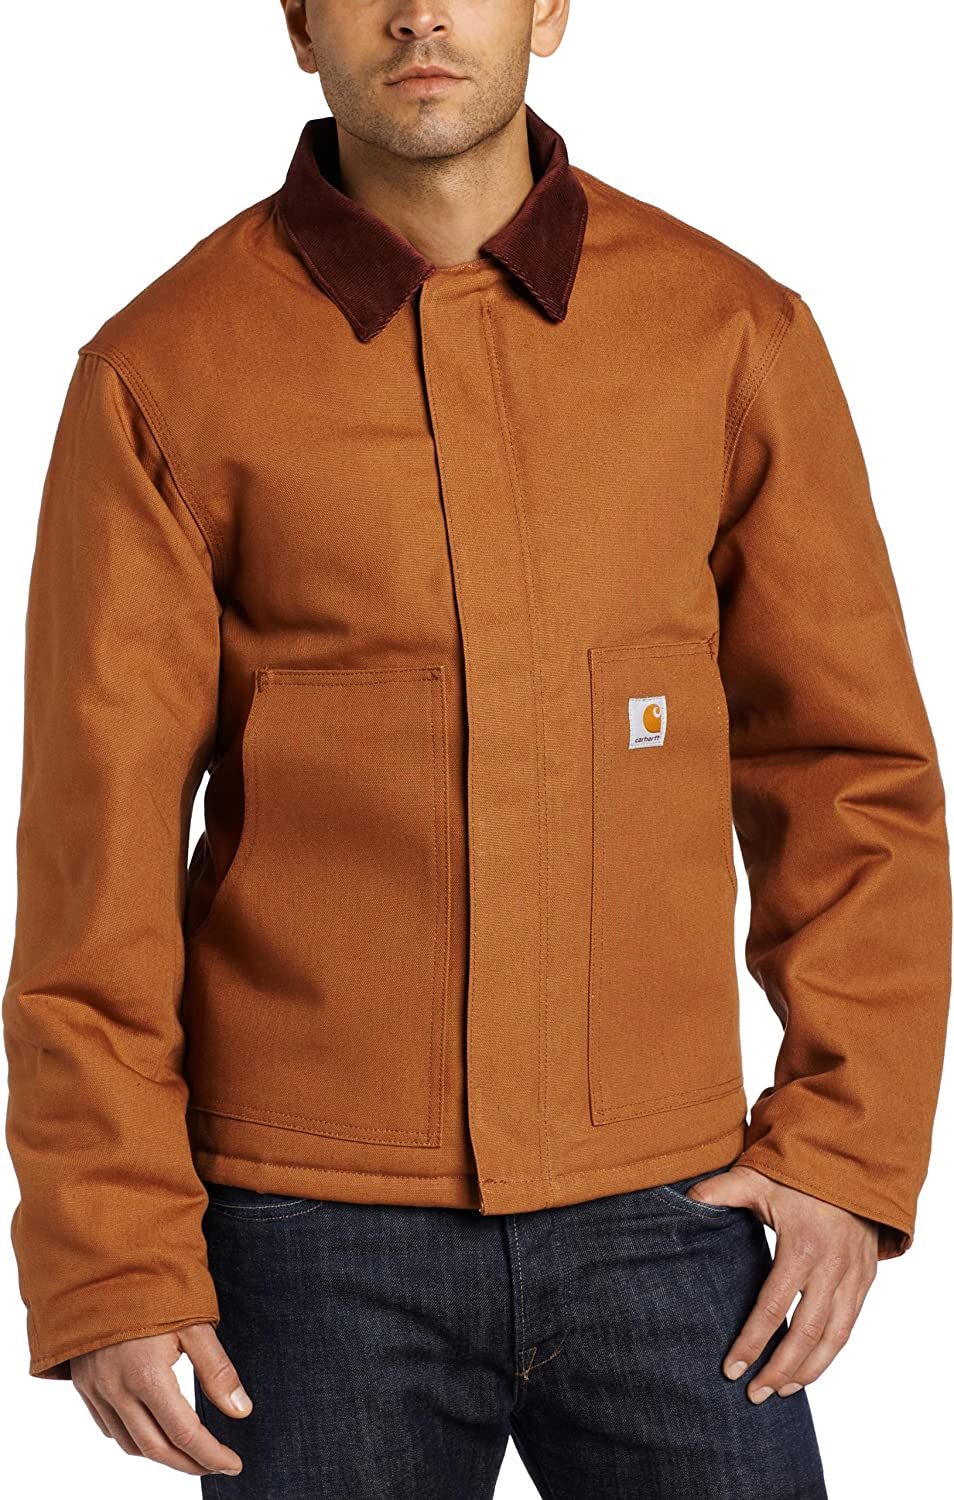 Amazon Com Carhartt Men S Big Tall Arctic Quilt Lined Duck Traditional Jacket J002 Work Utility Outerwear Clothing [ 1500 x 962 Pixel ]